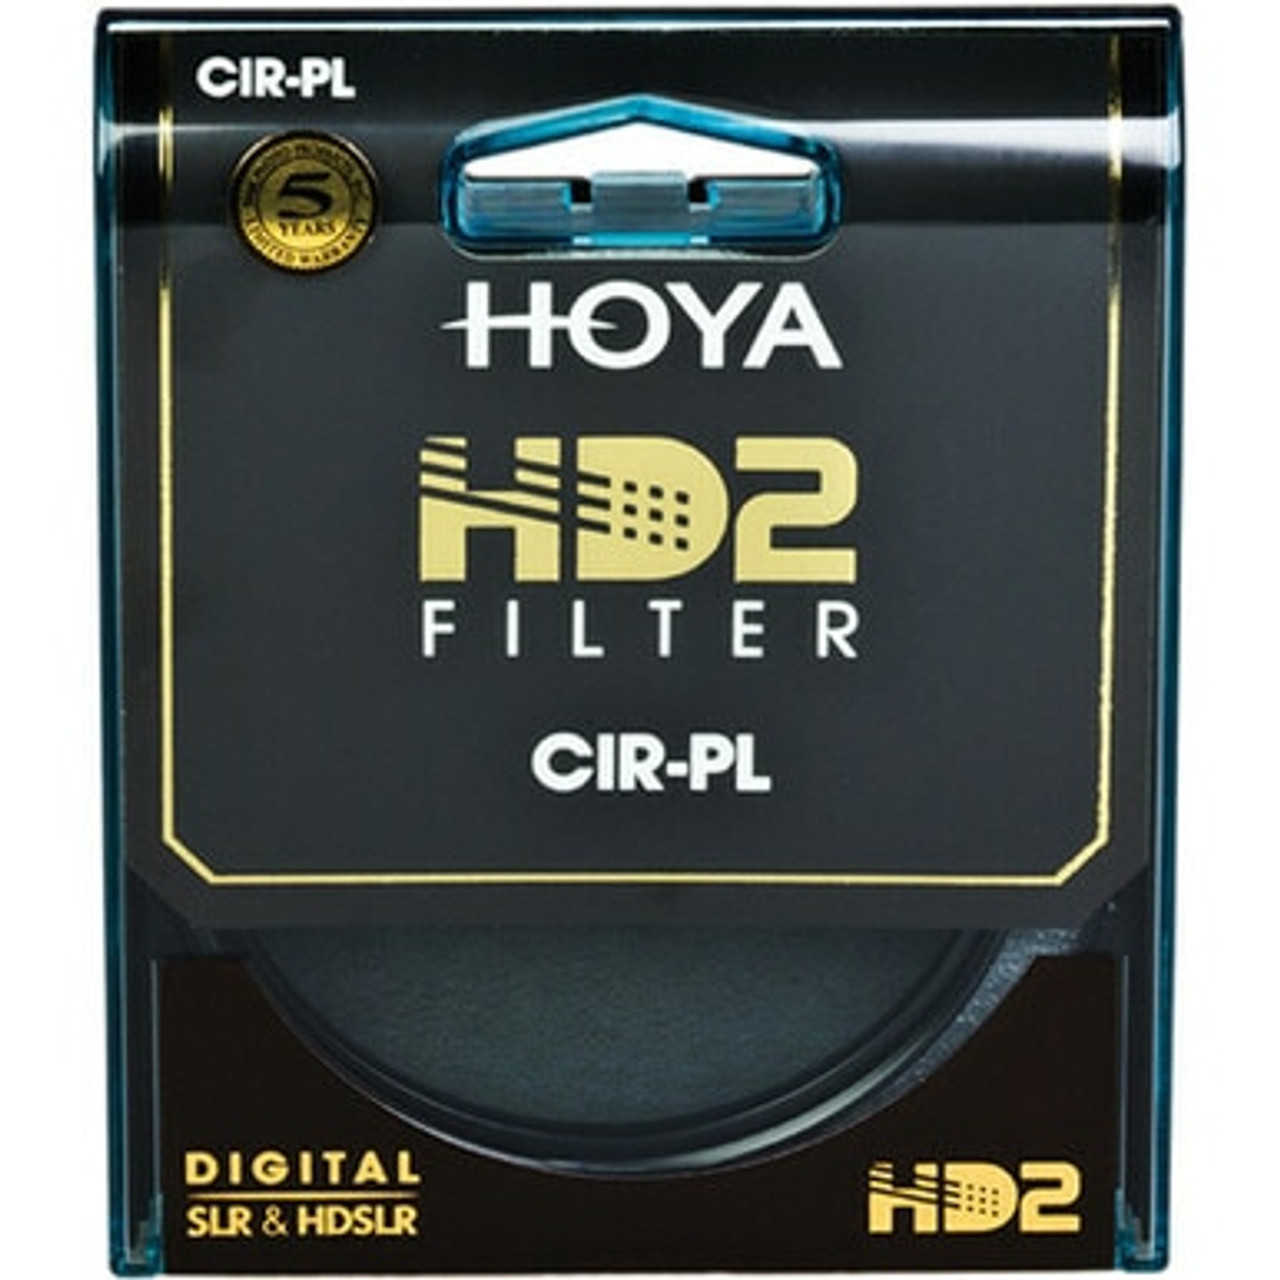 HOYA HD2 CIRCULAR POLARIZER FILTER (40.5MM)